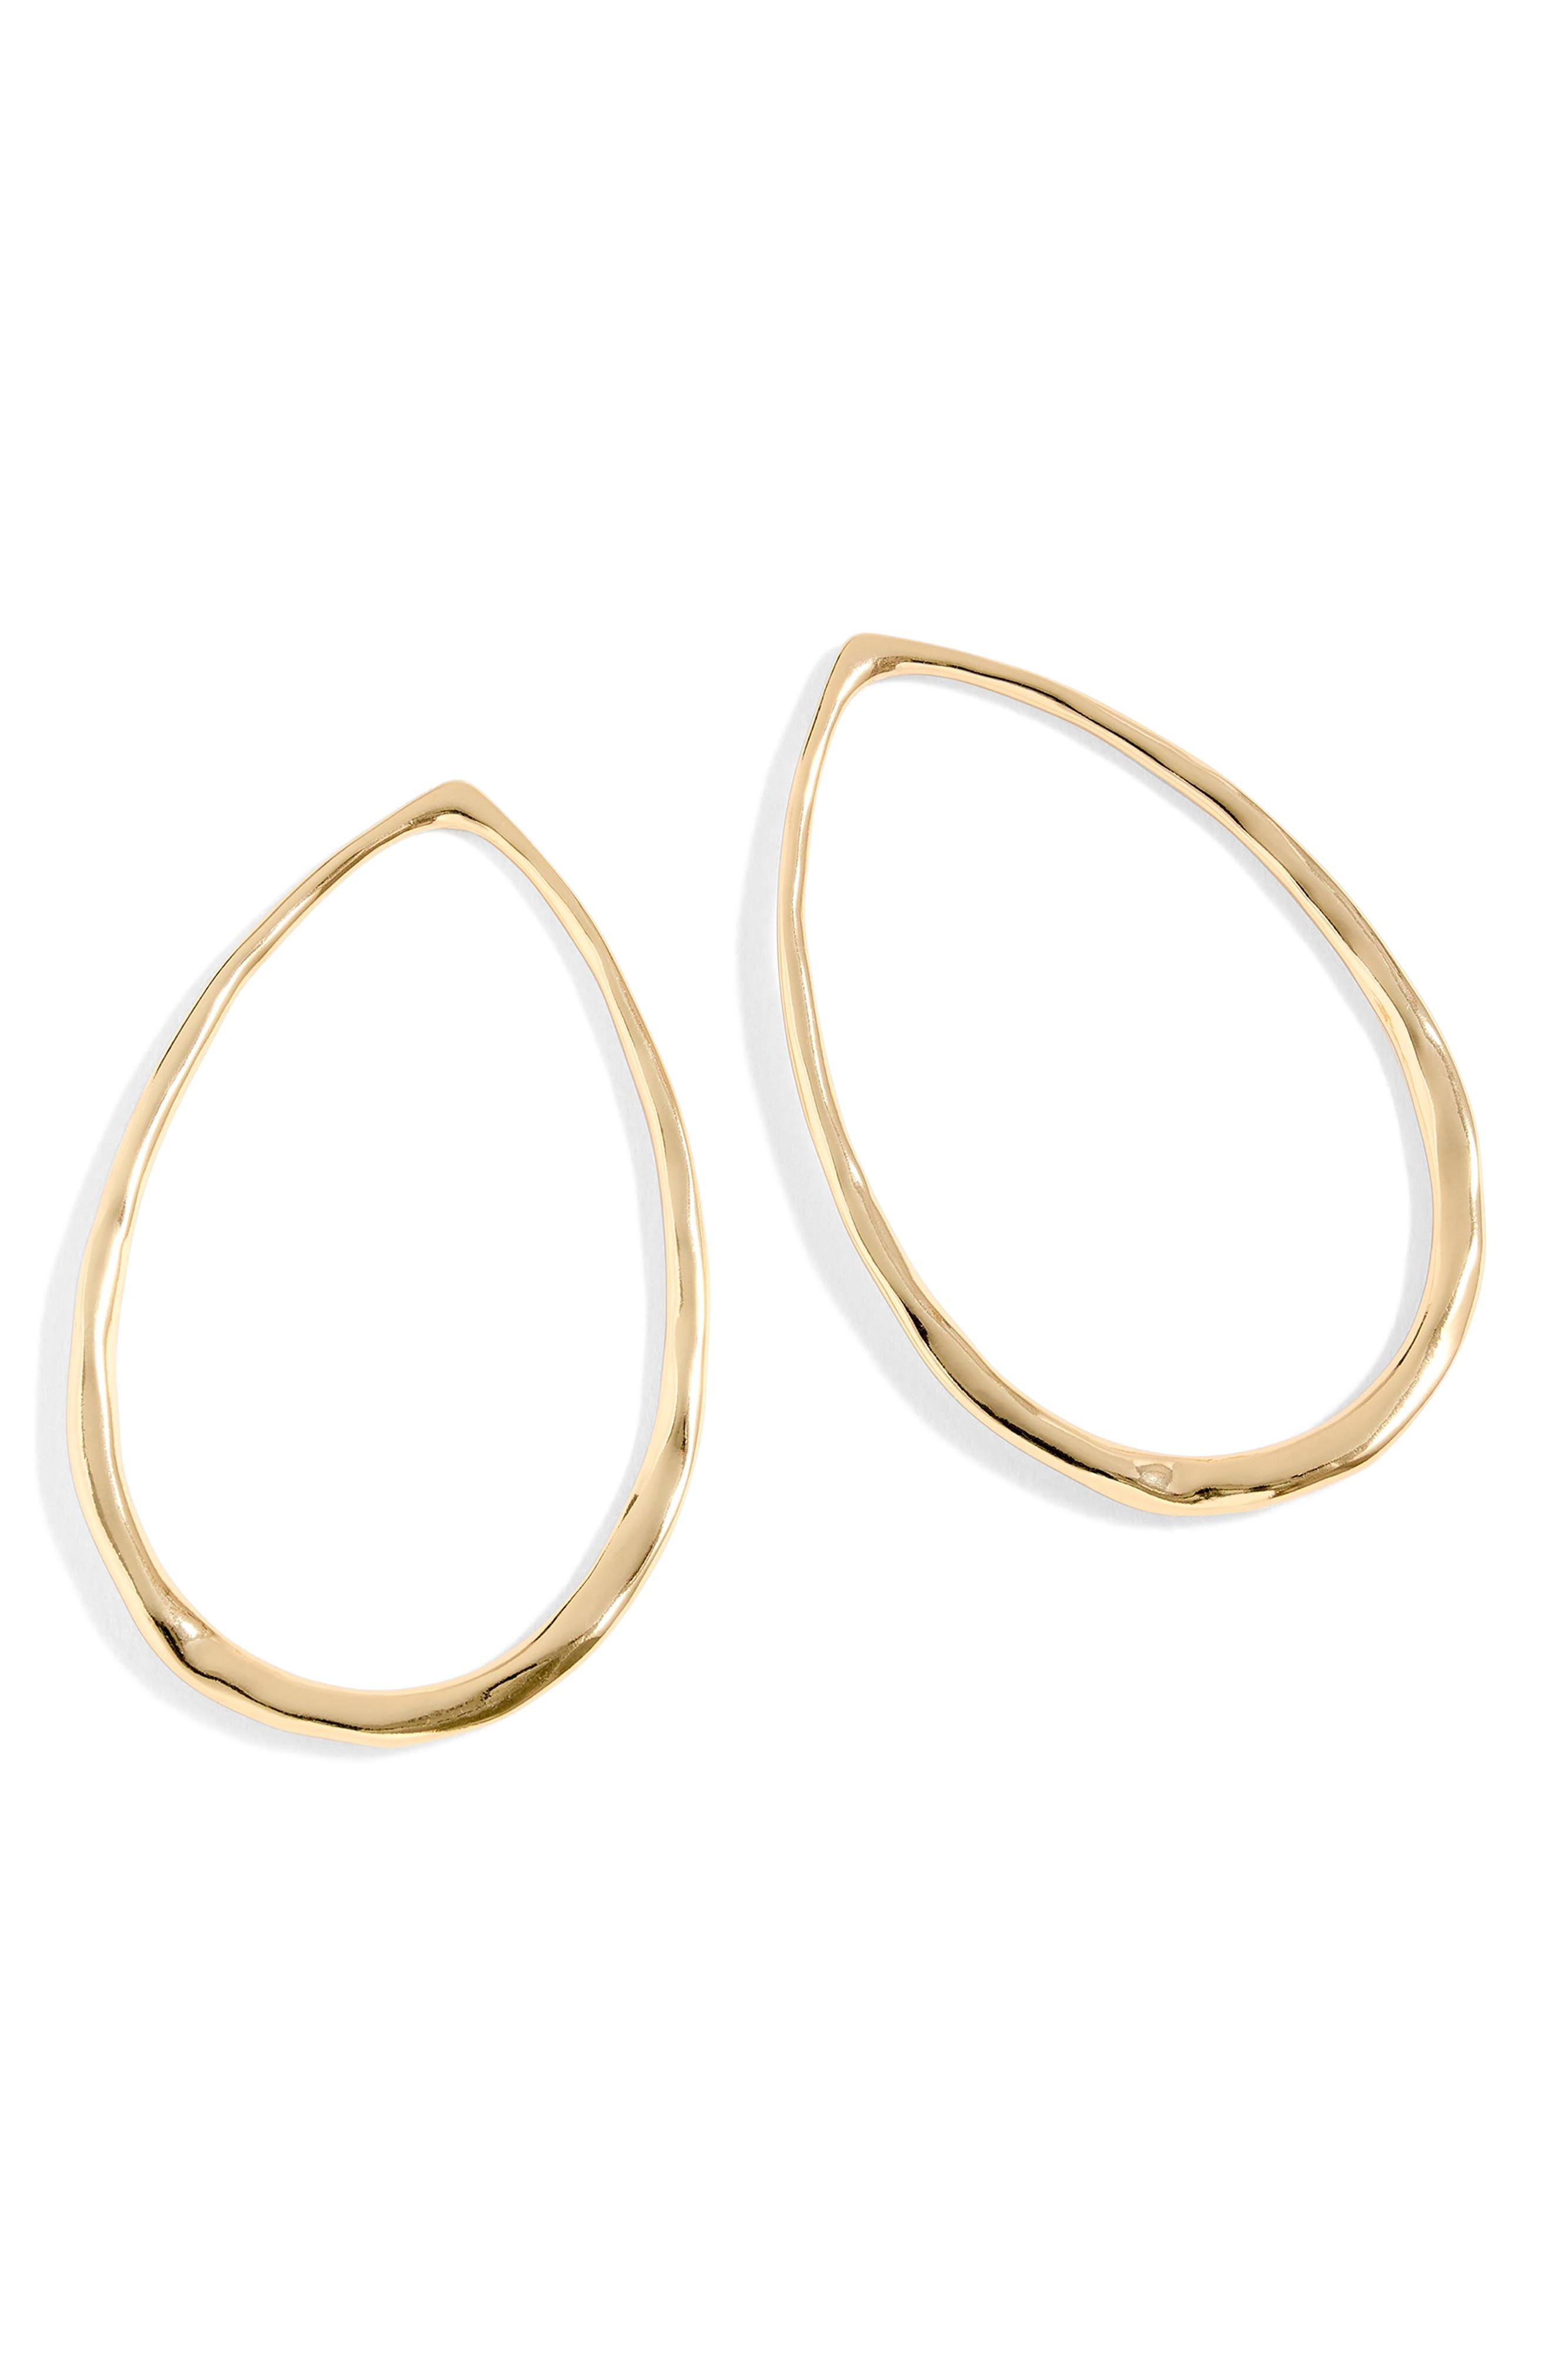 Hammered Teardrop Hoop Earrings,                         Main,                         color, Burnished Gold